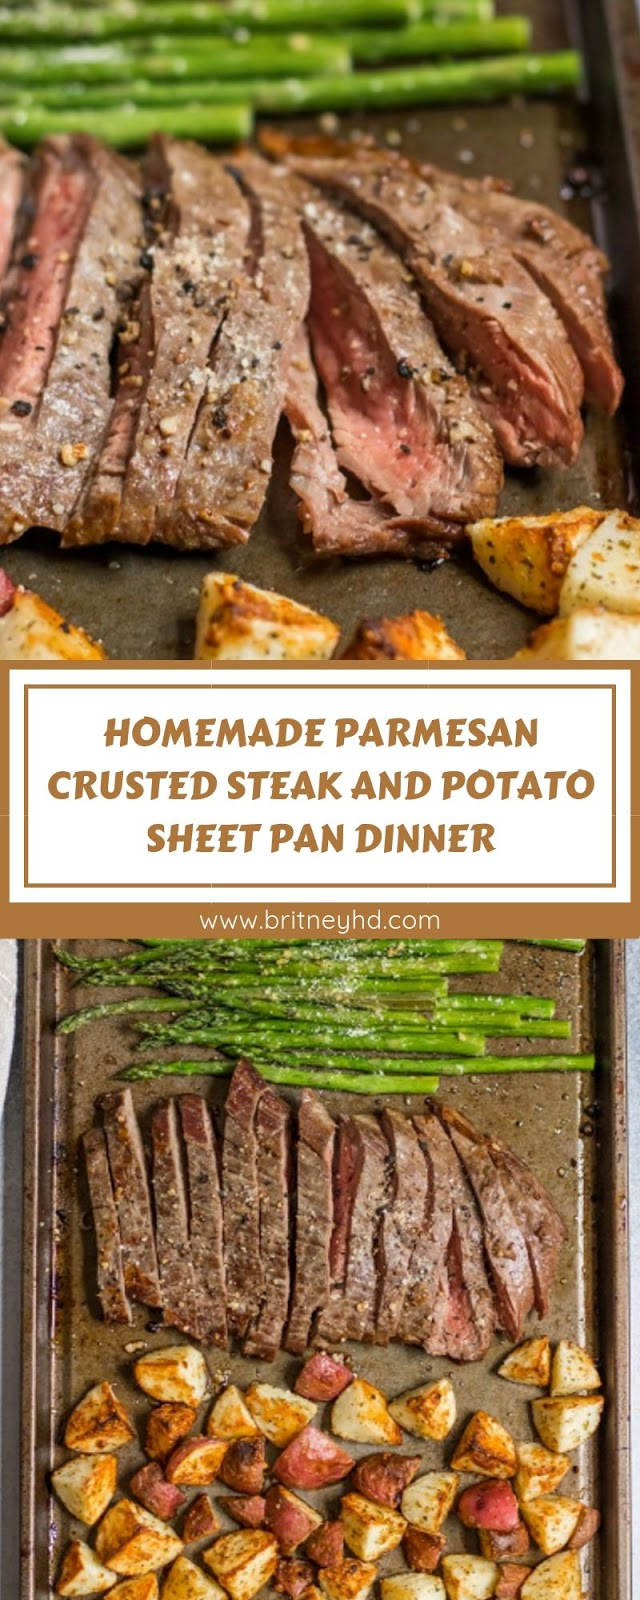 HOMEMADE PARMESAN CRUSTED STEAK AND POTATO SHEET PAN DINNER